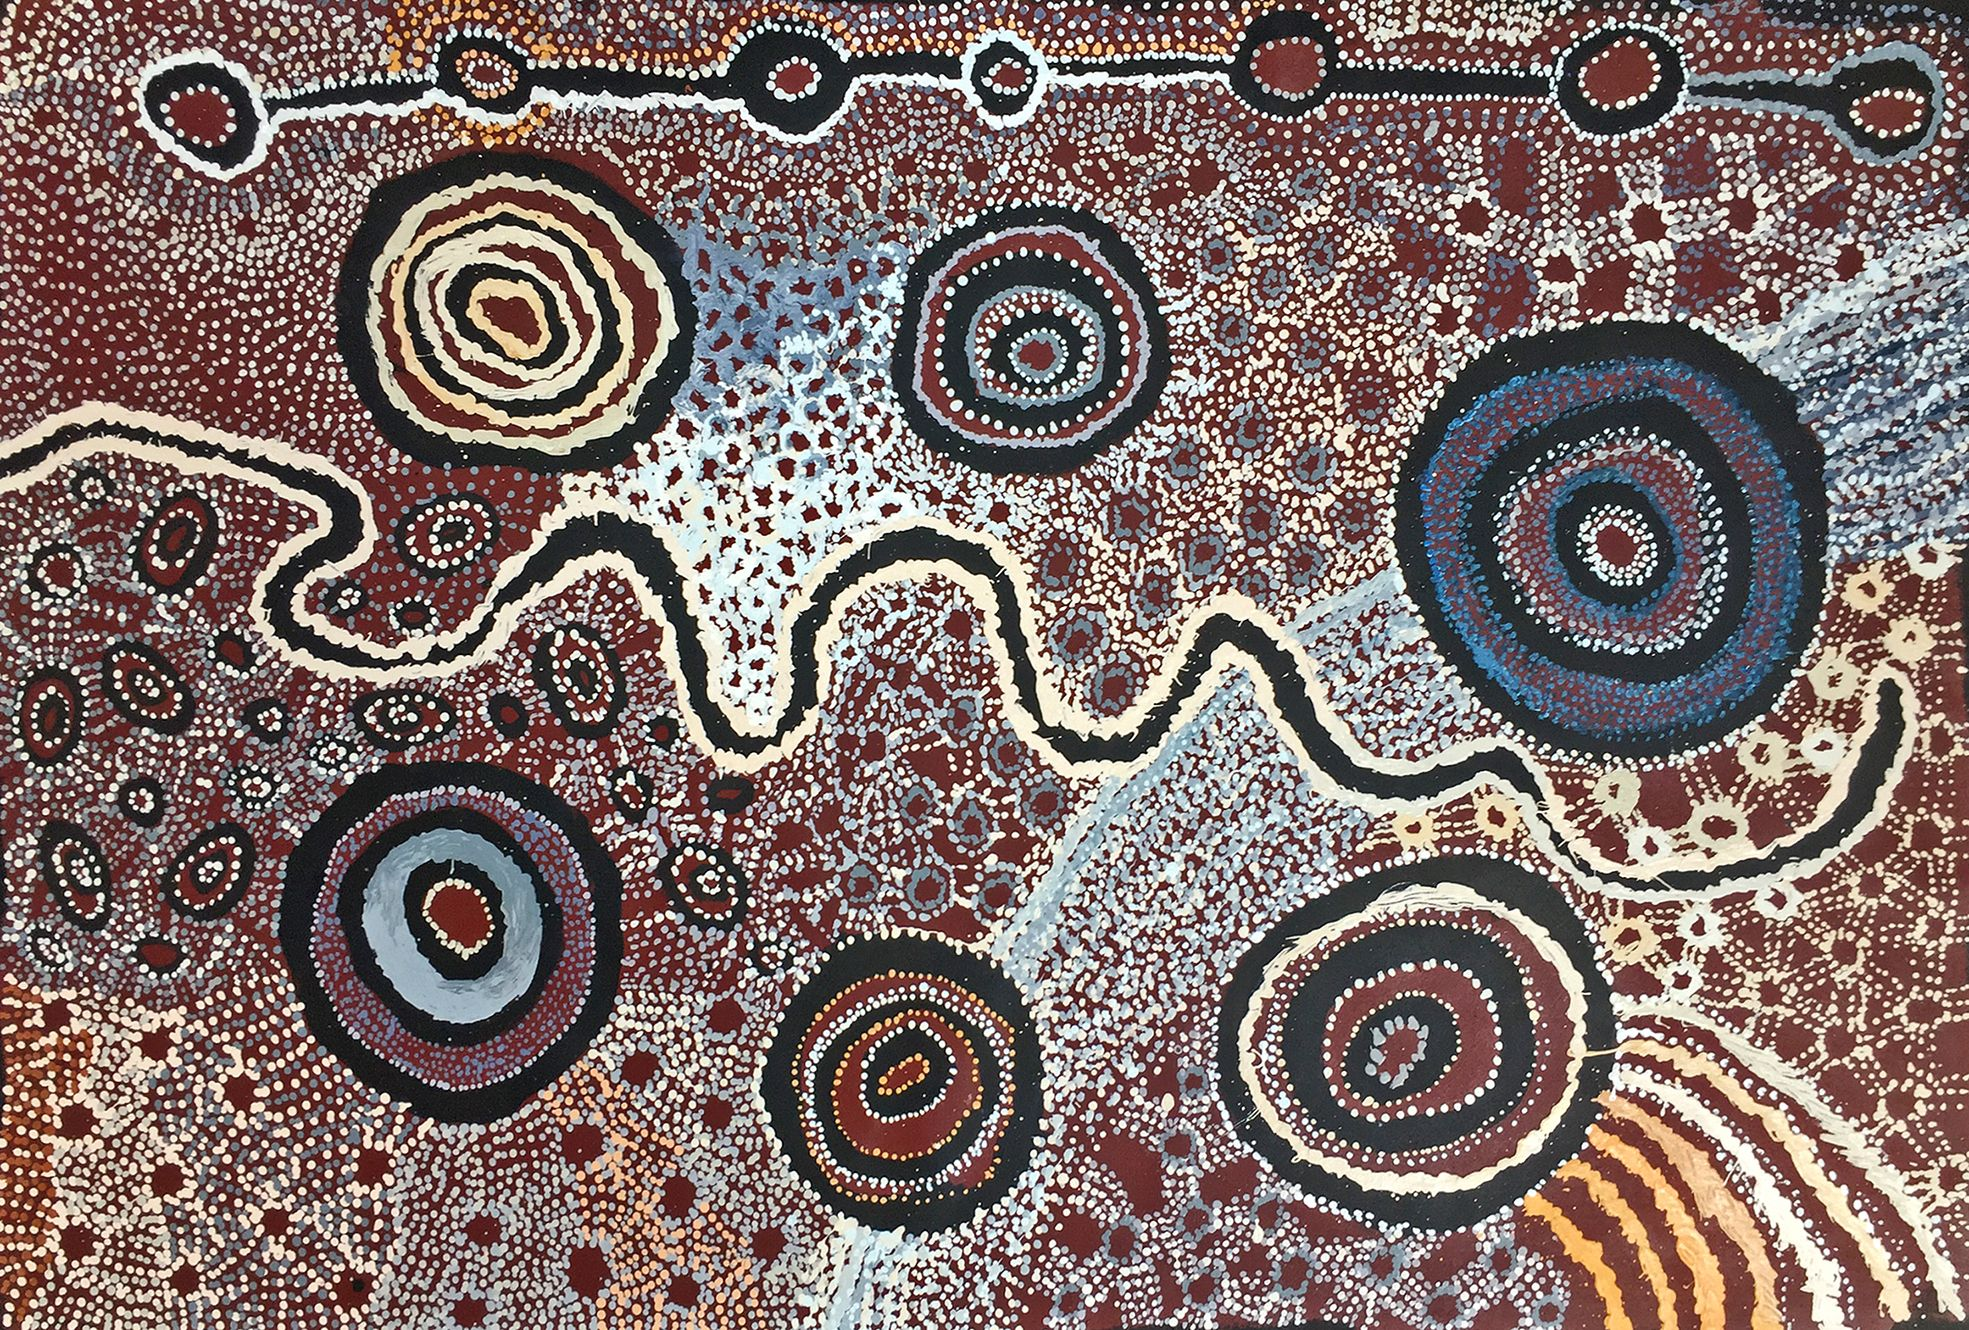 Artiste : Wattaru collaborative. Titre : Ilpili - Dreaming Time Stories. 2017. Provenance : Tjungu Palya art center, APY lands, Australie. 150 x 100 cm © Aboriginal Signature • Estrangin gallery, avec l'autorisation de l'artiste et du Tjungu Palya Art Centre